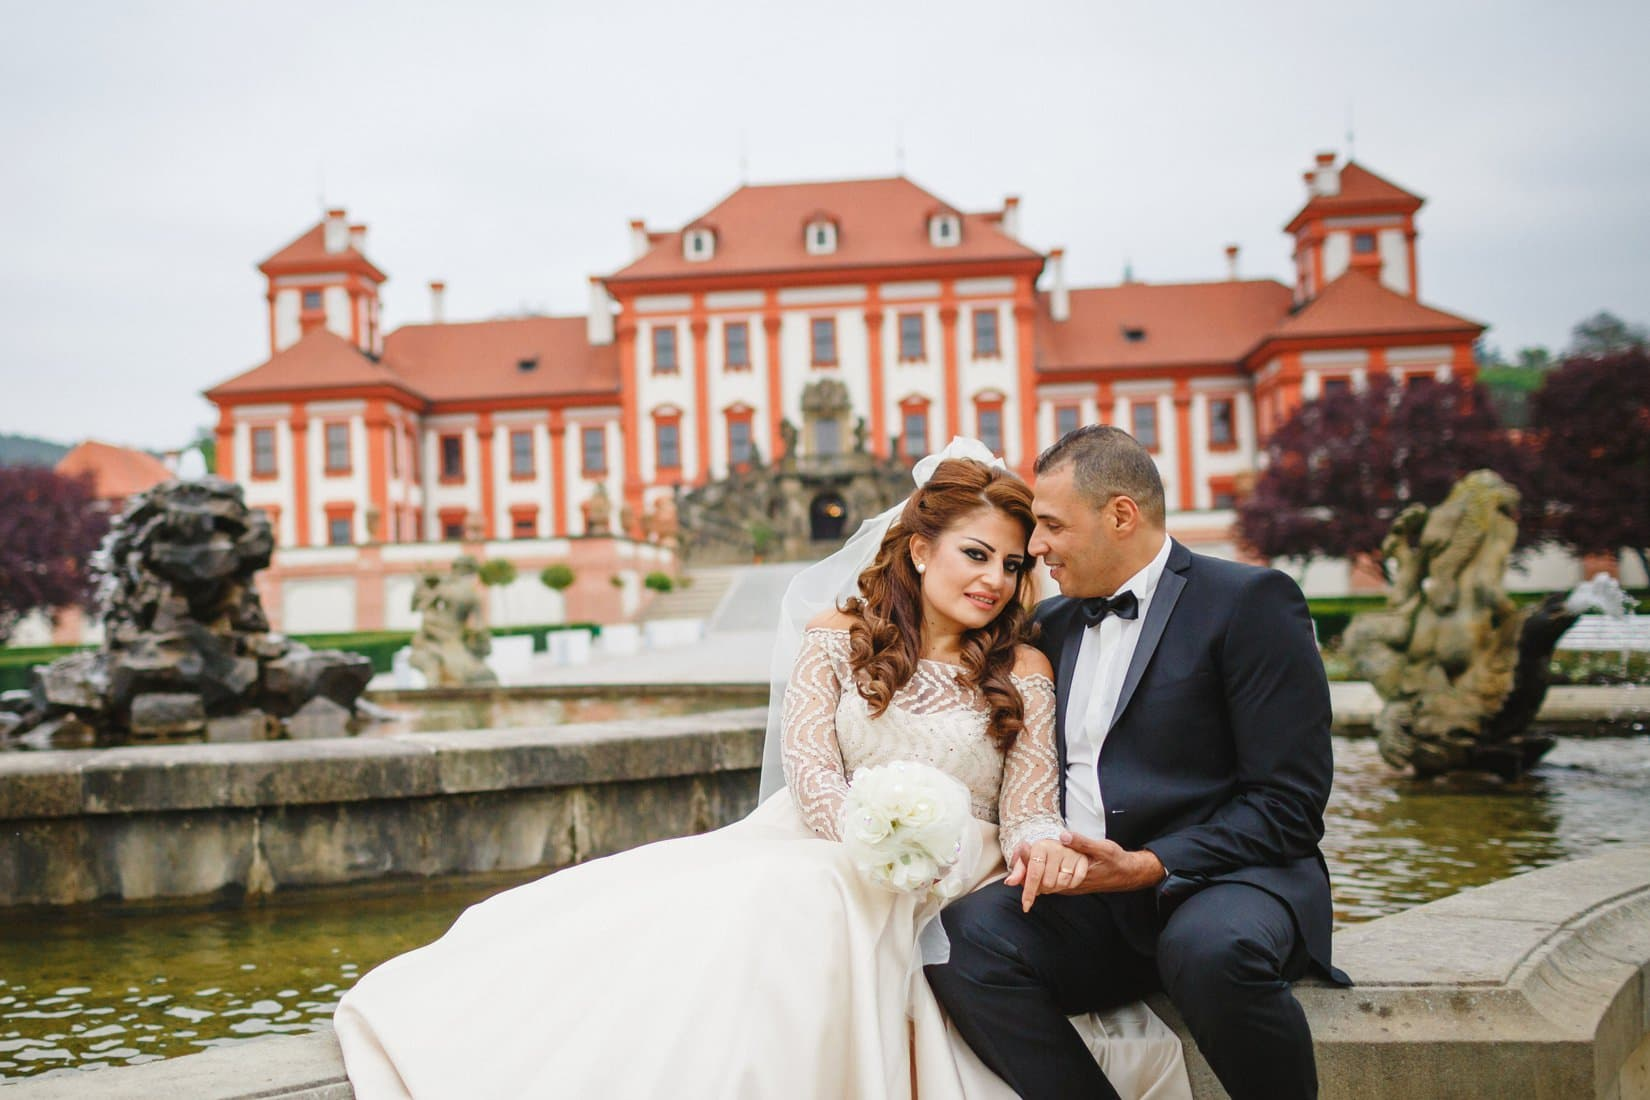 H+C destination wedding photography at the Troja Chateau in Prague